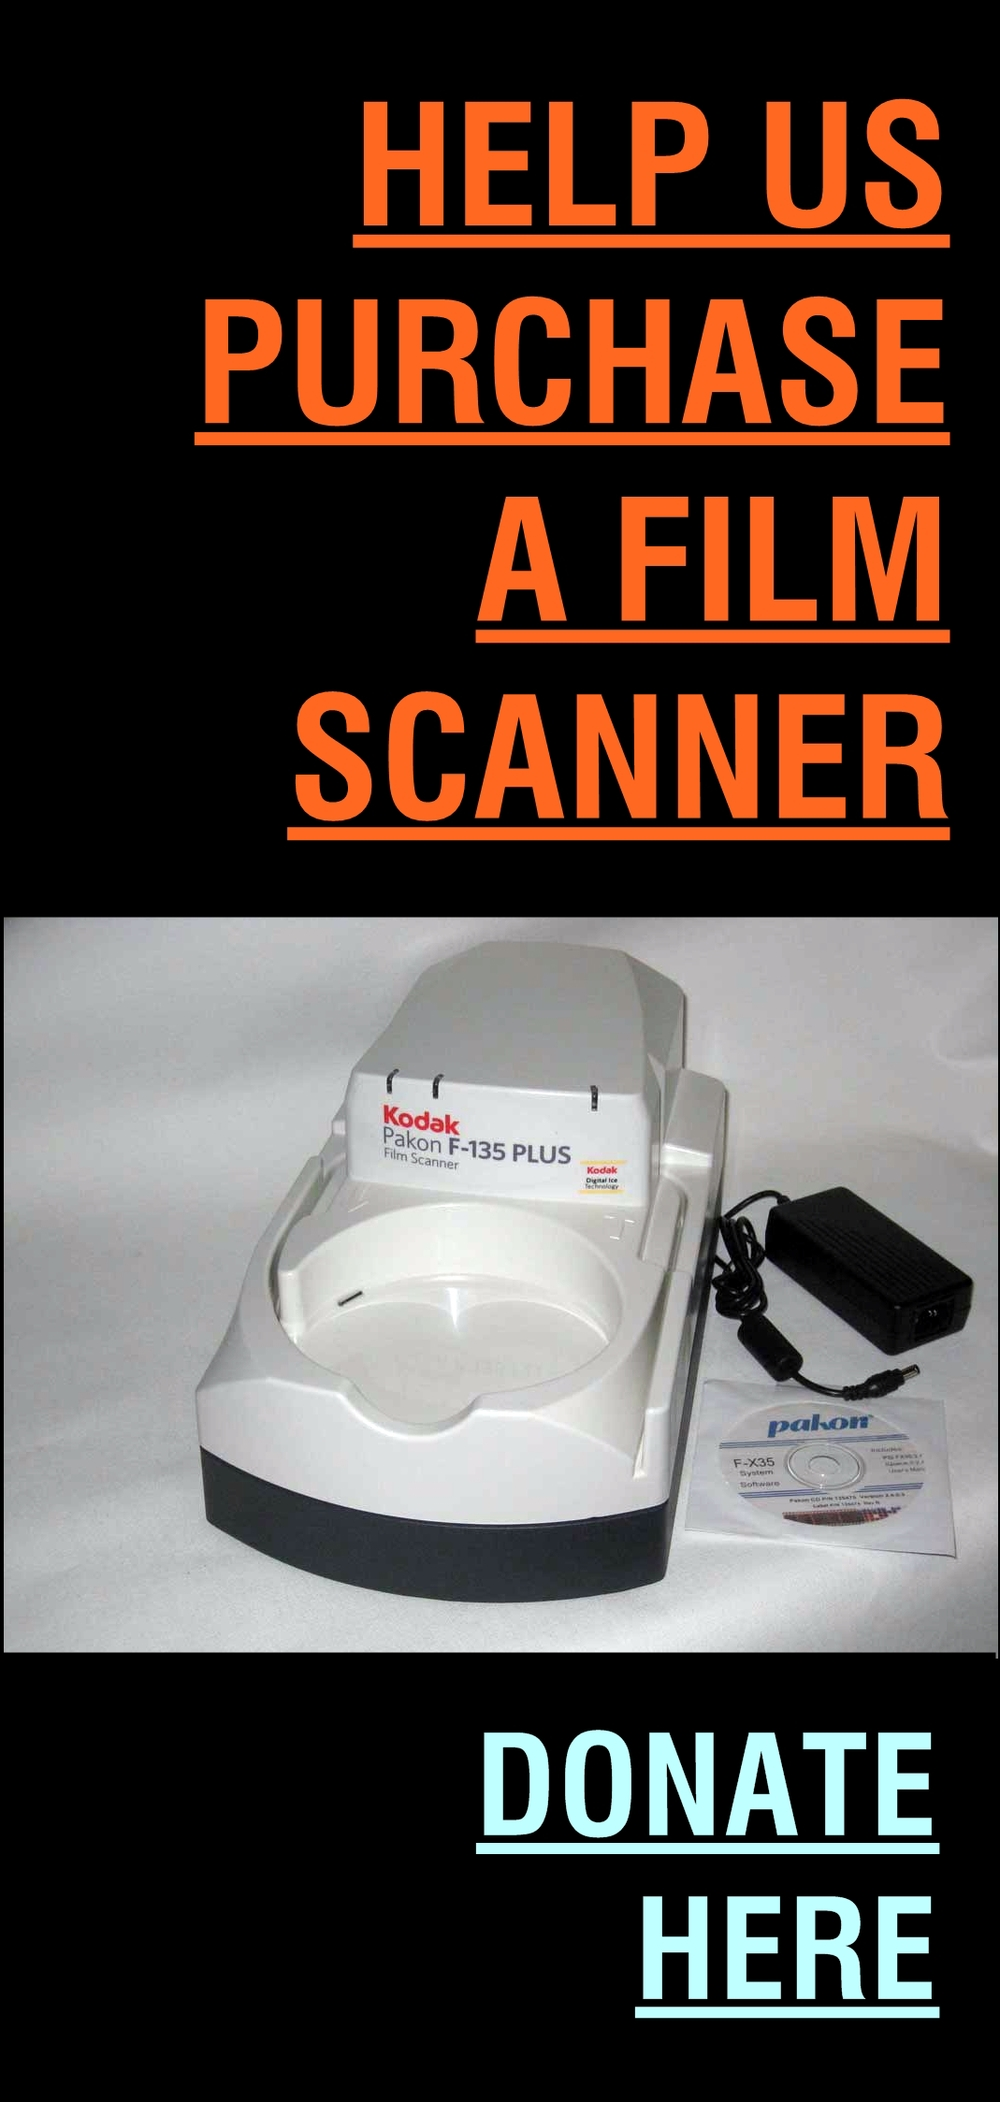 PLEASE DONATE TO THE WECC FILM SCANNER FUNDRAISER